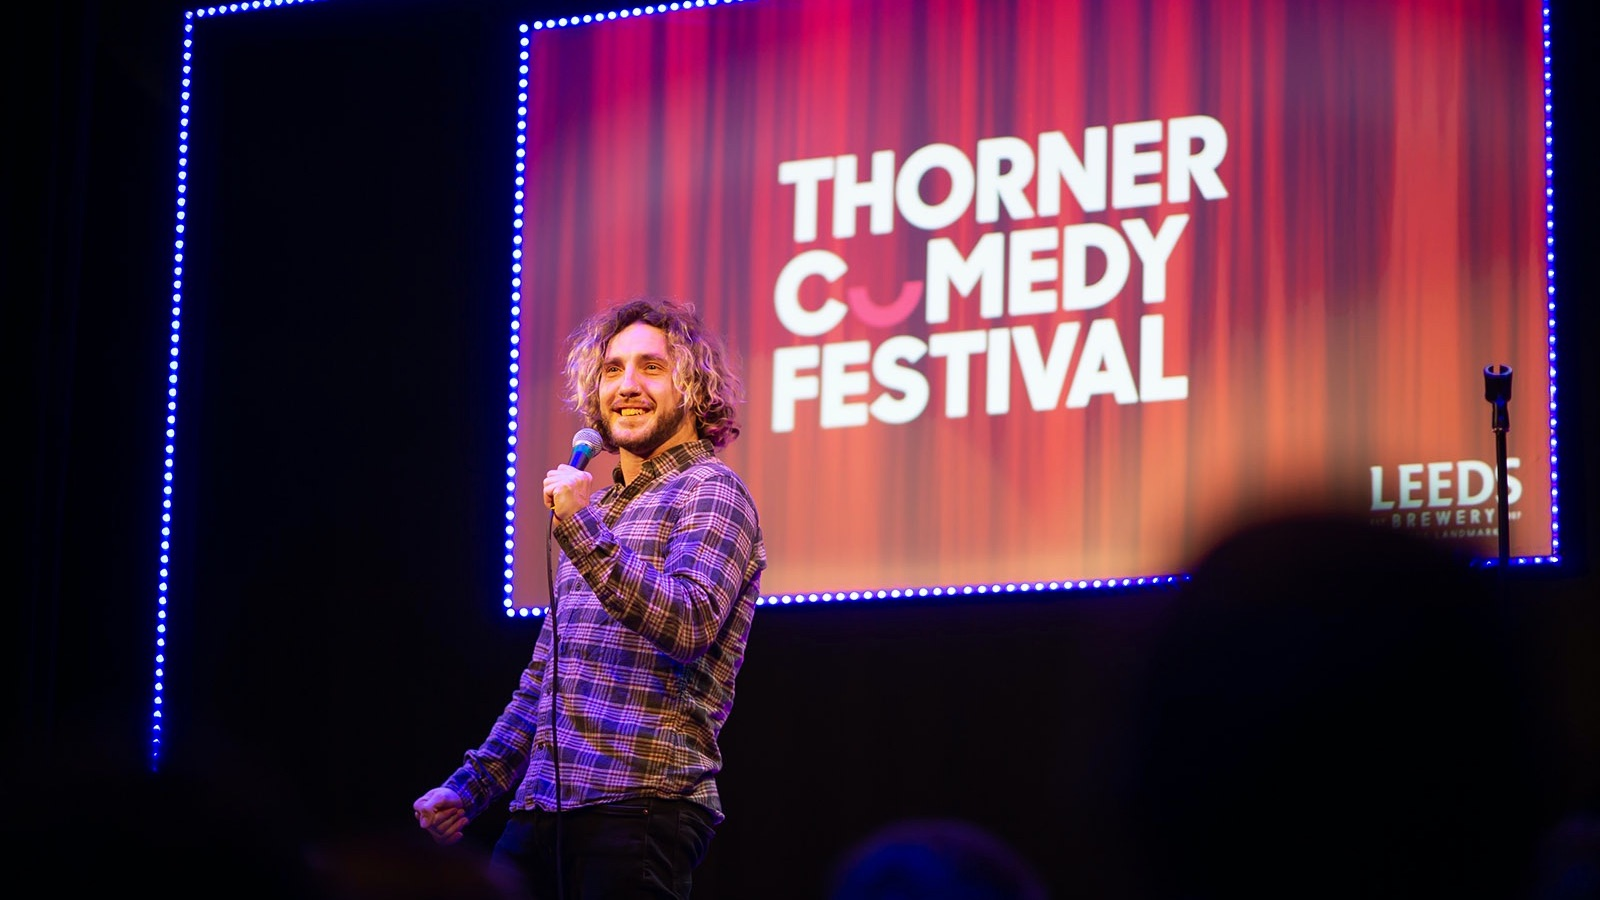 thorner-comedy-festival-homepage-banner